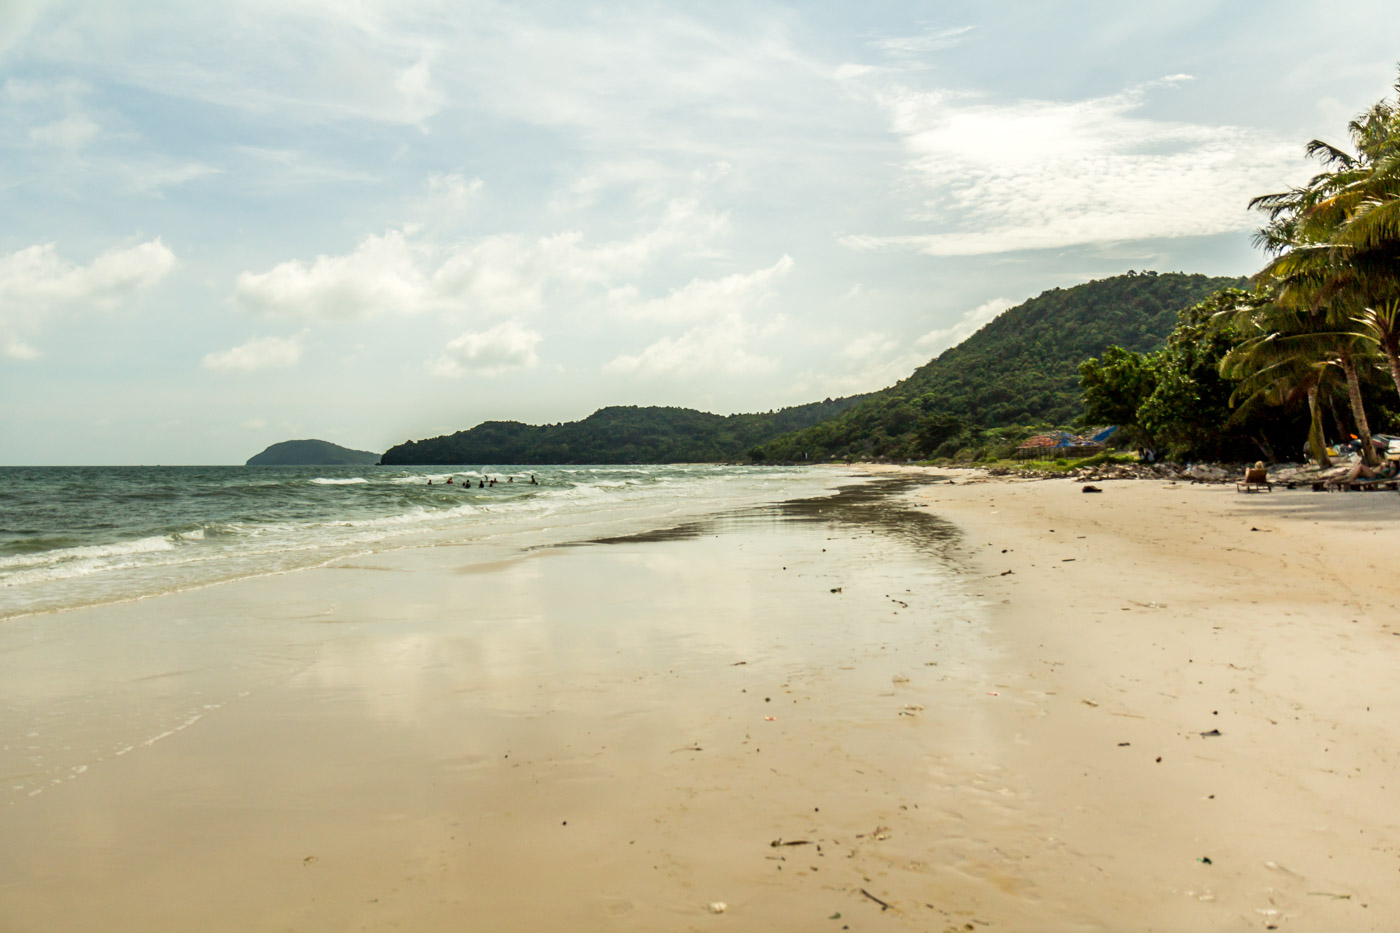 The wide sands of Sao Beach.